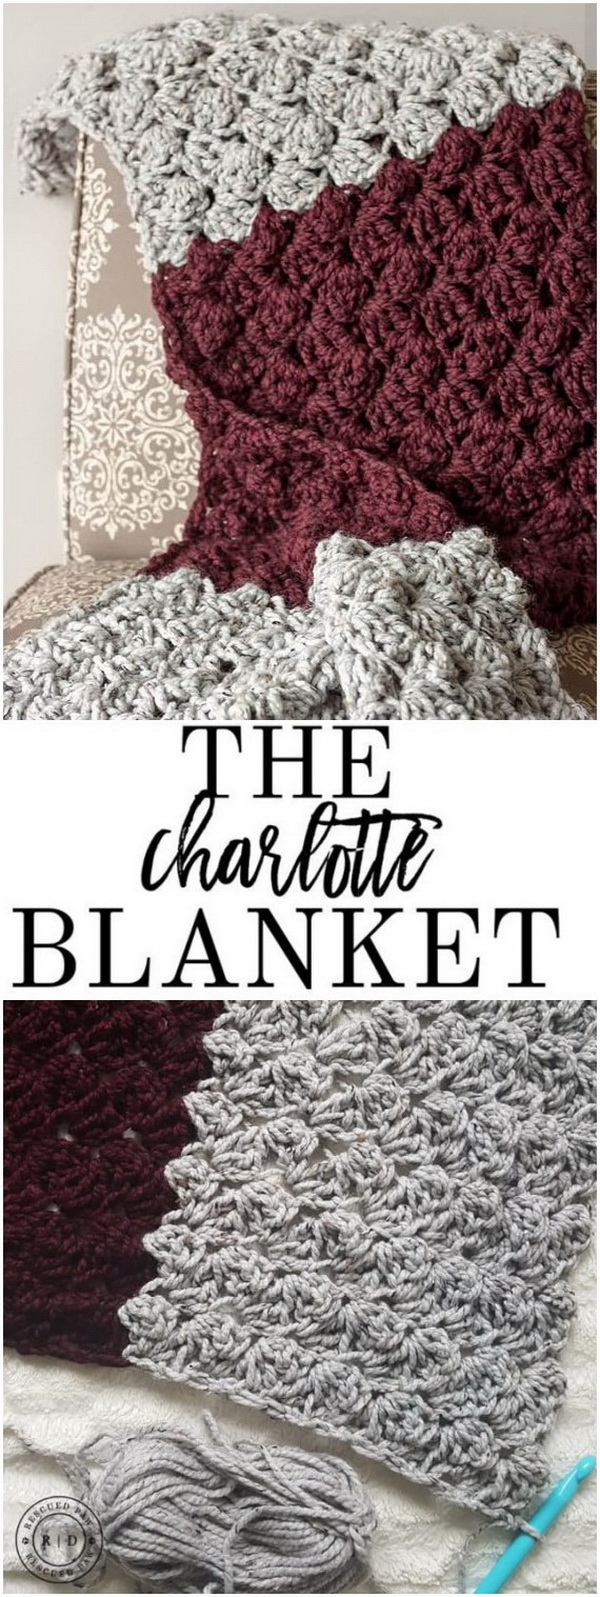 Quick And Easy Crochet Blanket Patterns For Beginners: Charlotte Crochet Blanket.